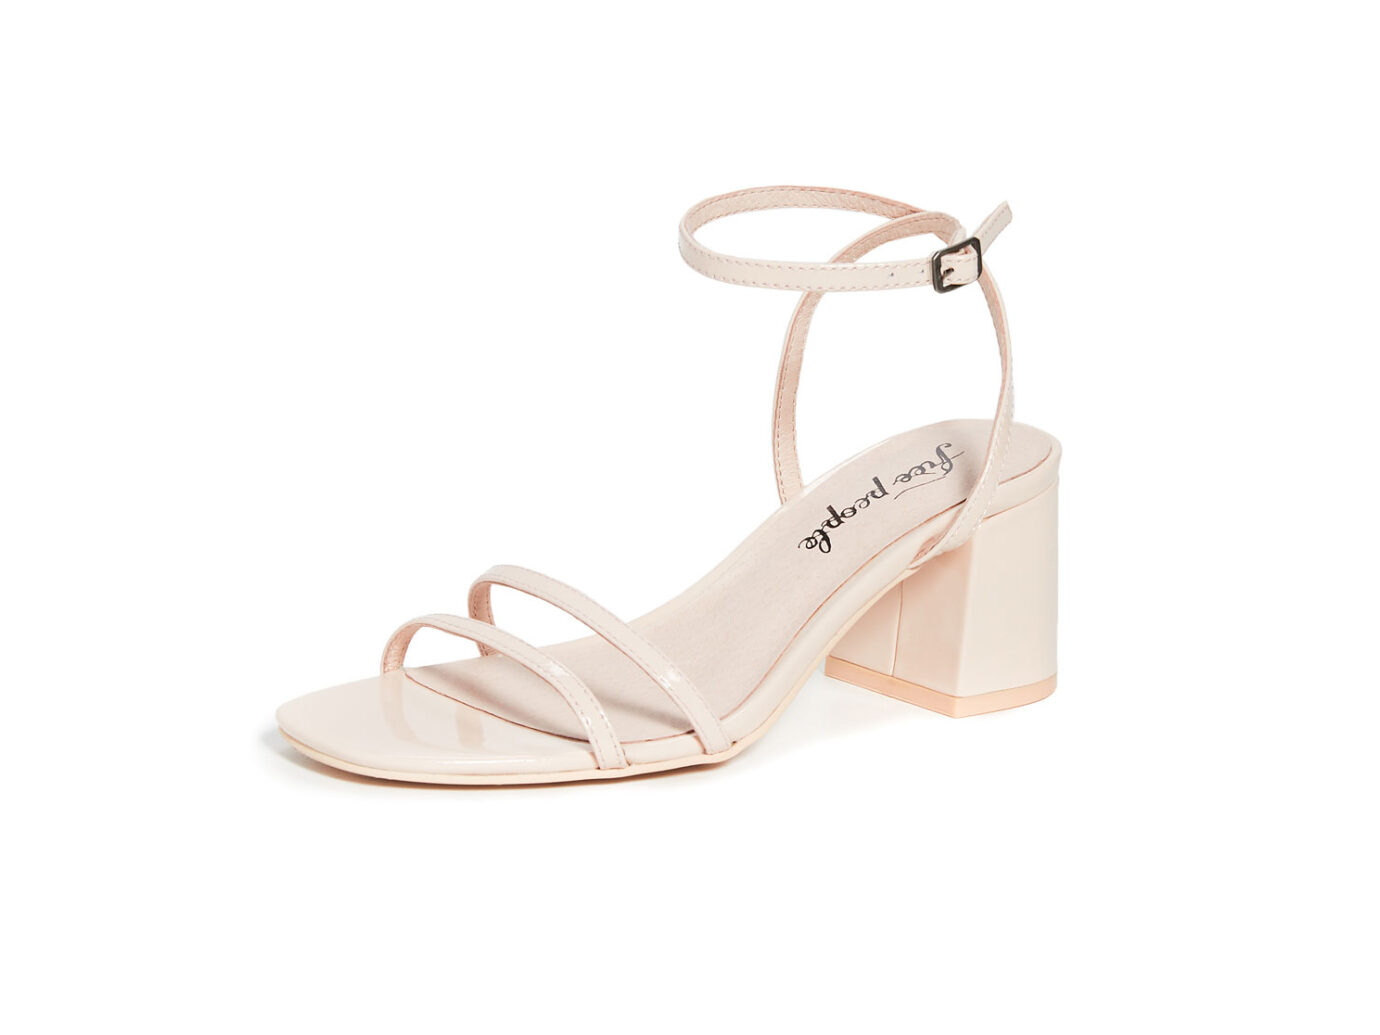 Free People Gabby Block Heel Sandals